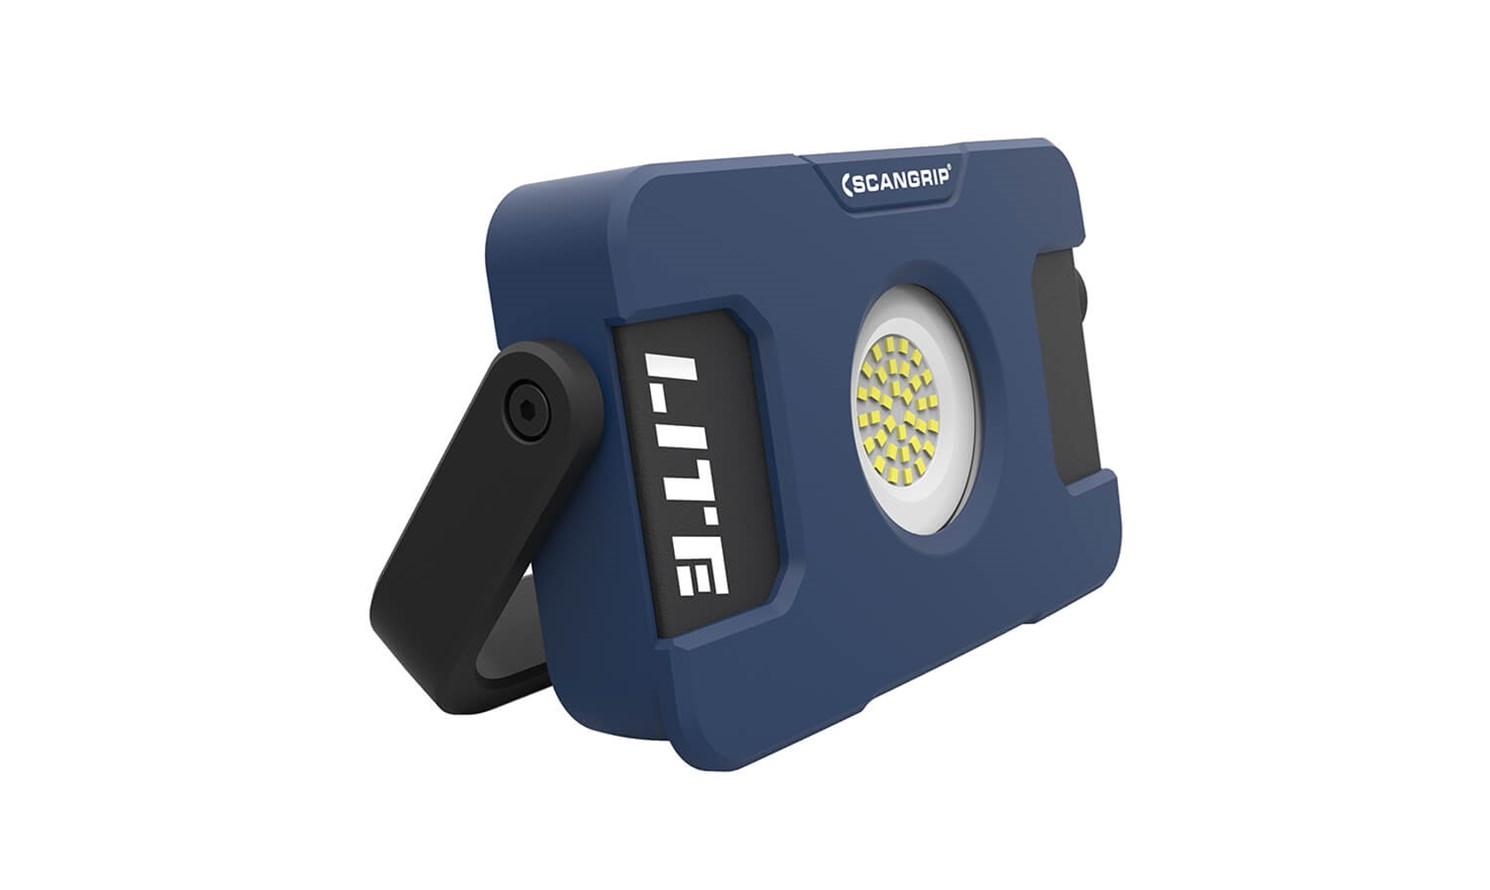 SCANGRIP FLOOD LITE S 03.5630